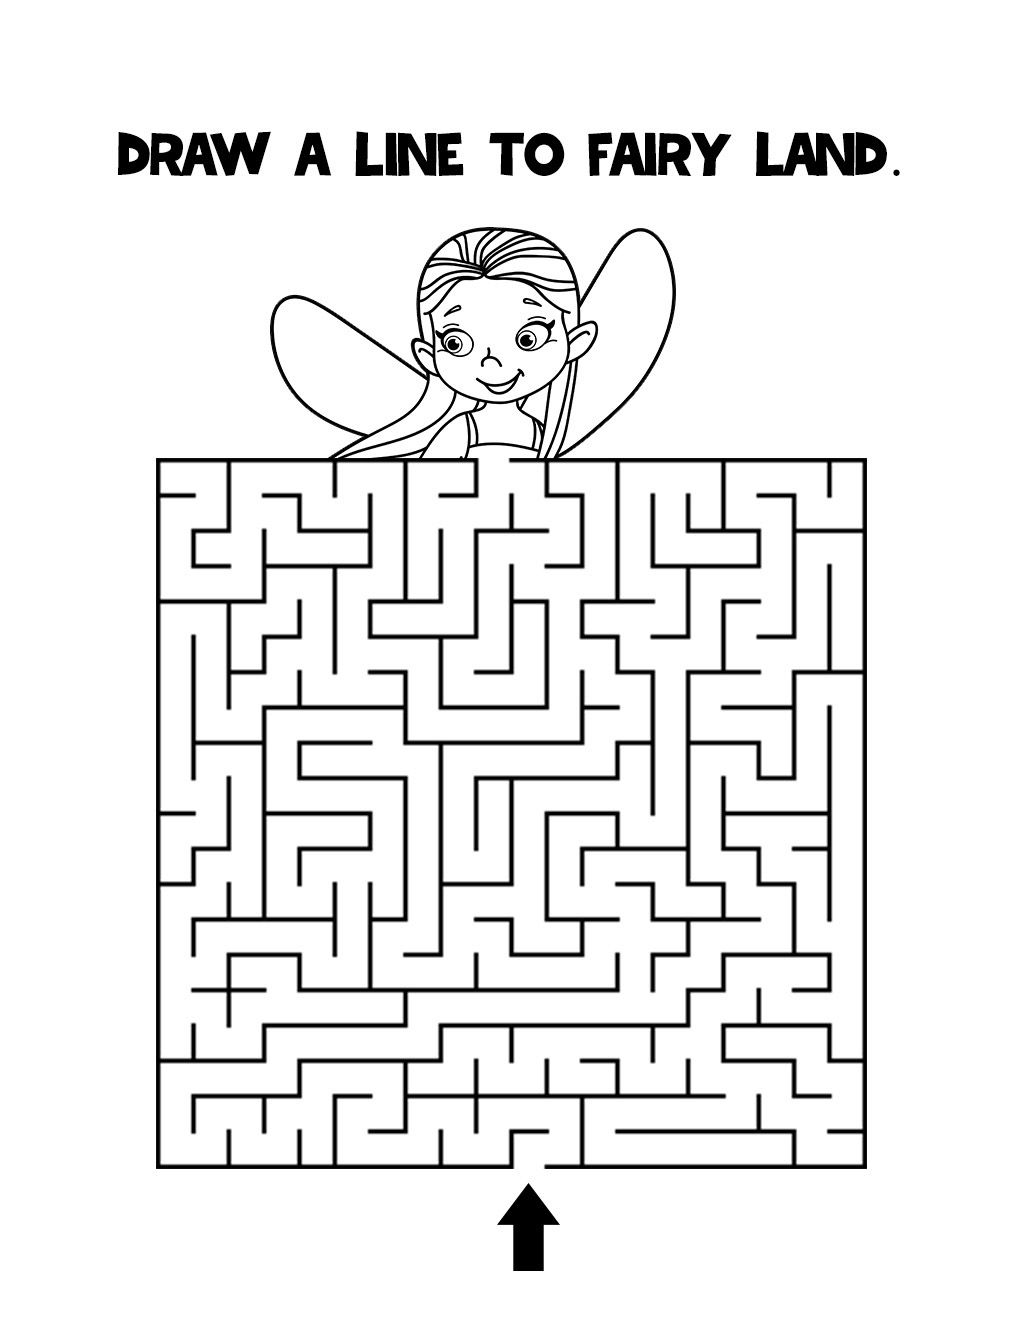 Kids Fairy Tail Mazes Activity Book